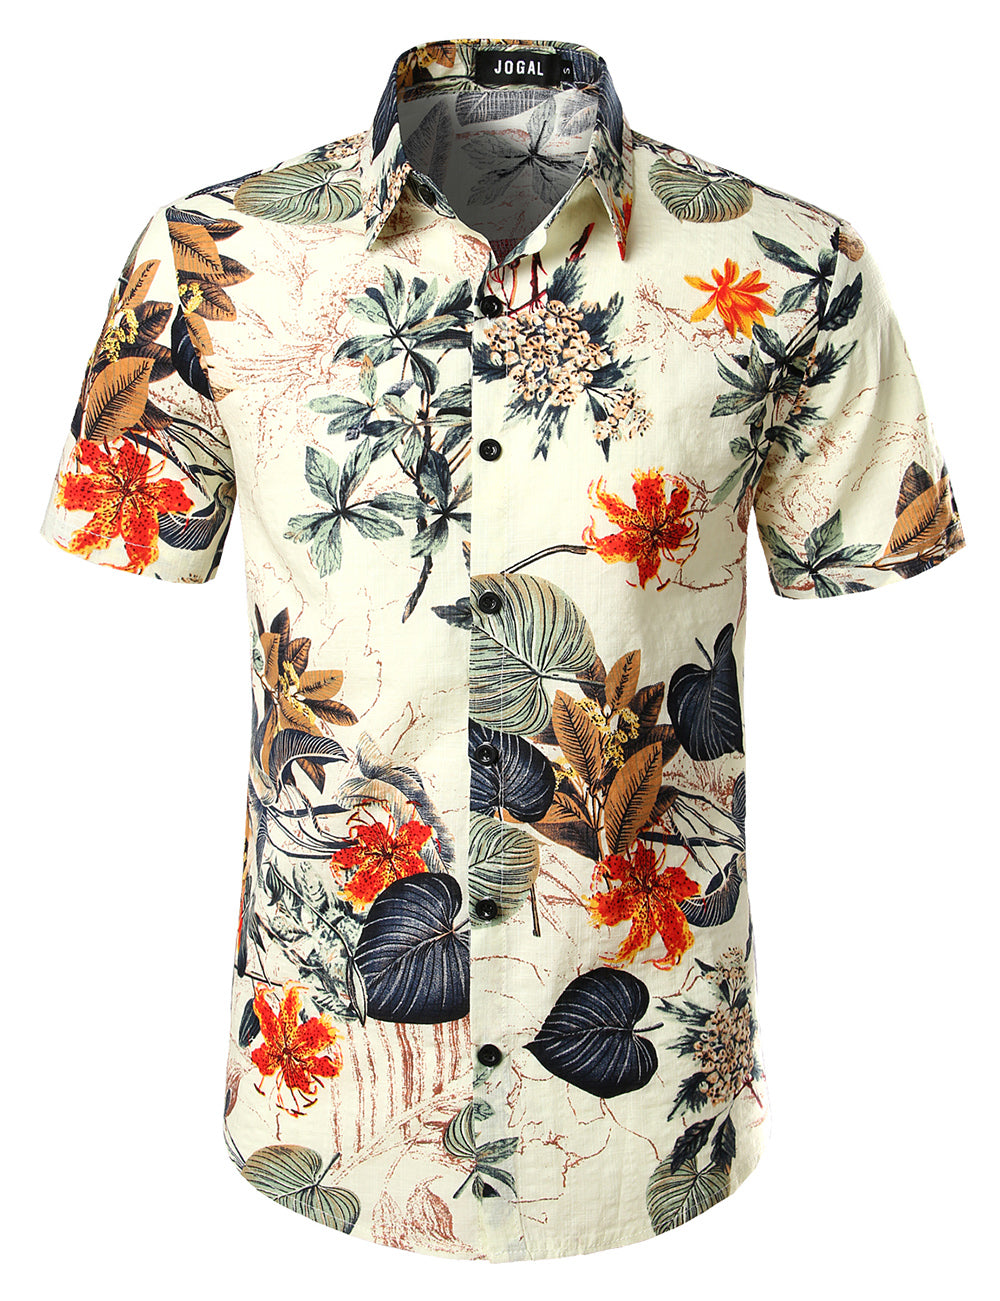 JOGAL Men's Flower Casual Button Down Short Sleeve Hawaiian Shirt(White)